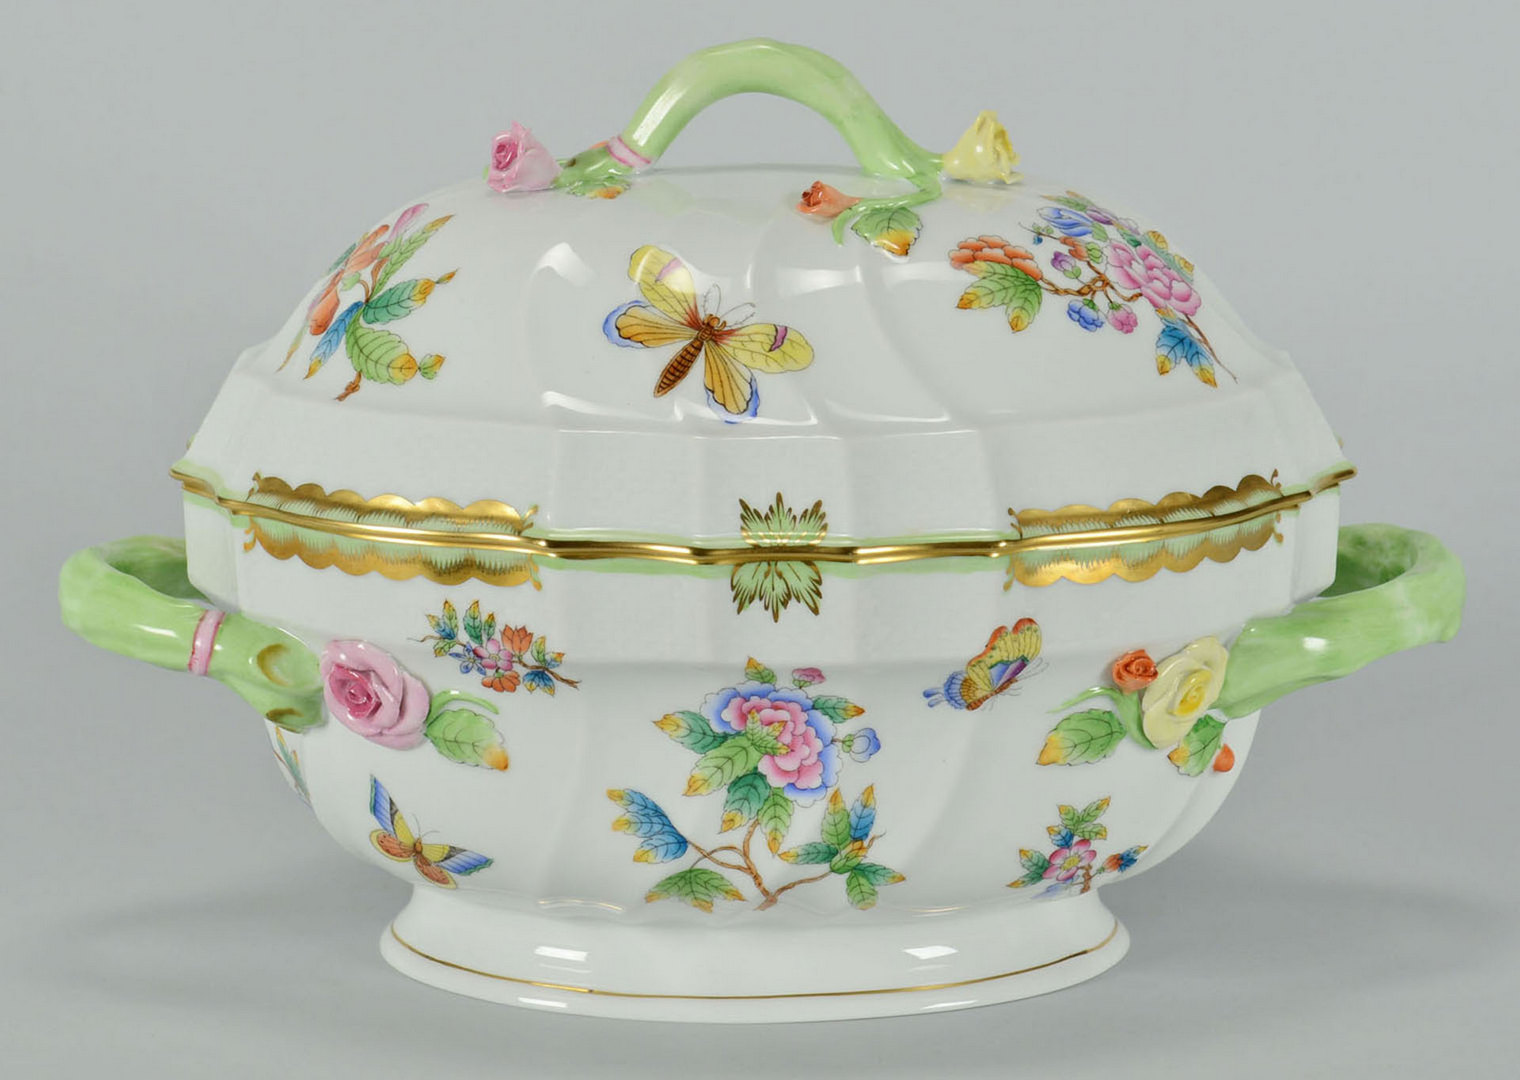 Lot 106: 8 Herend Queen Victoria Porcelain Service Items